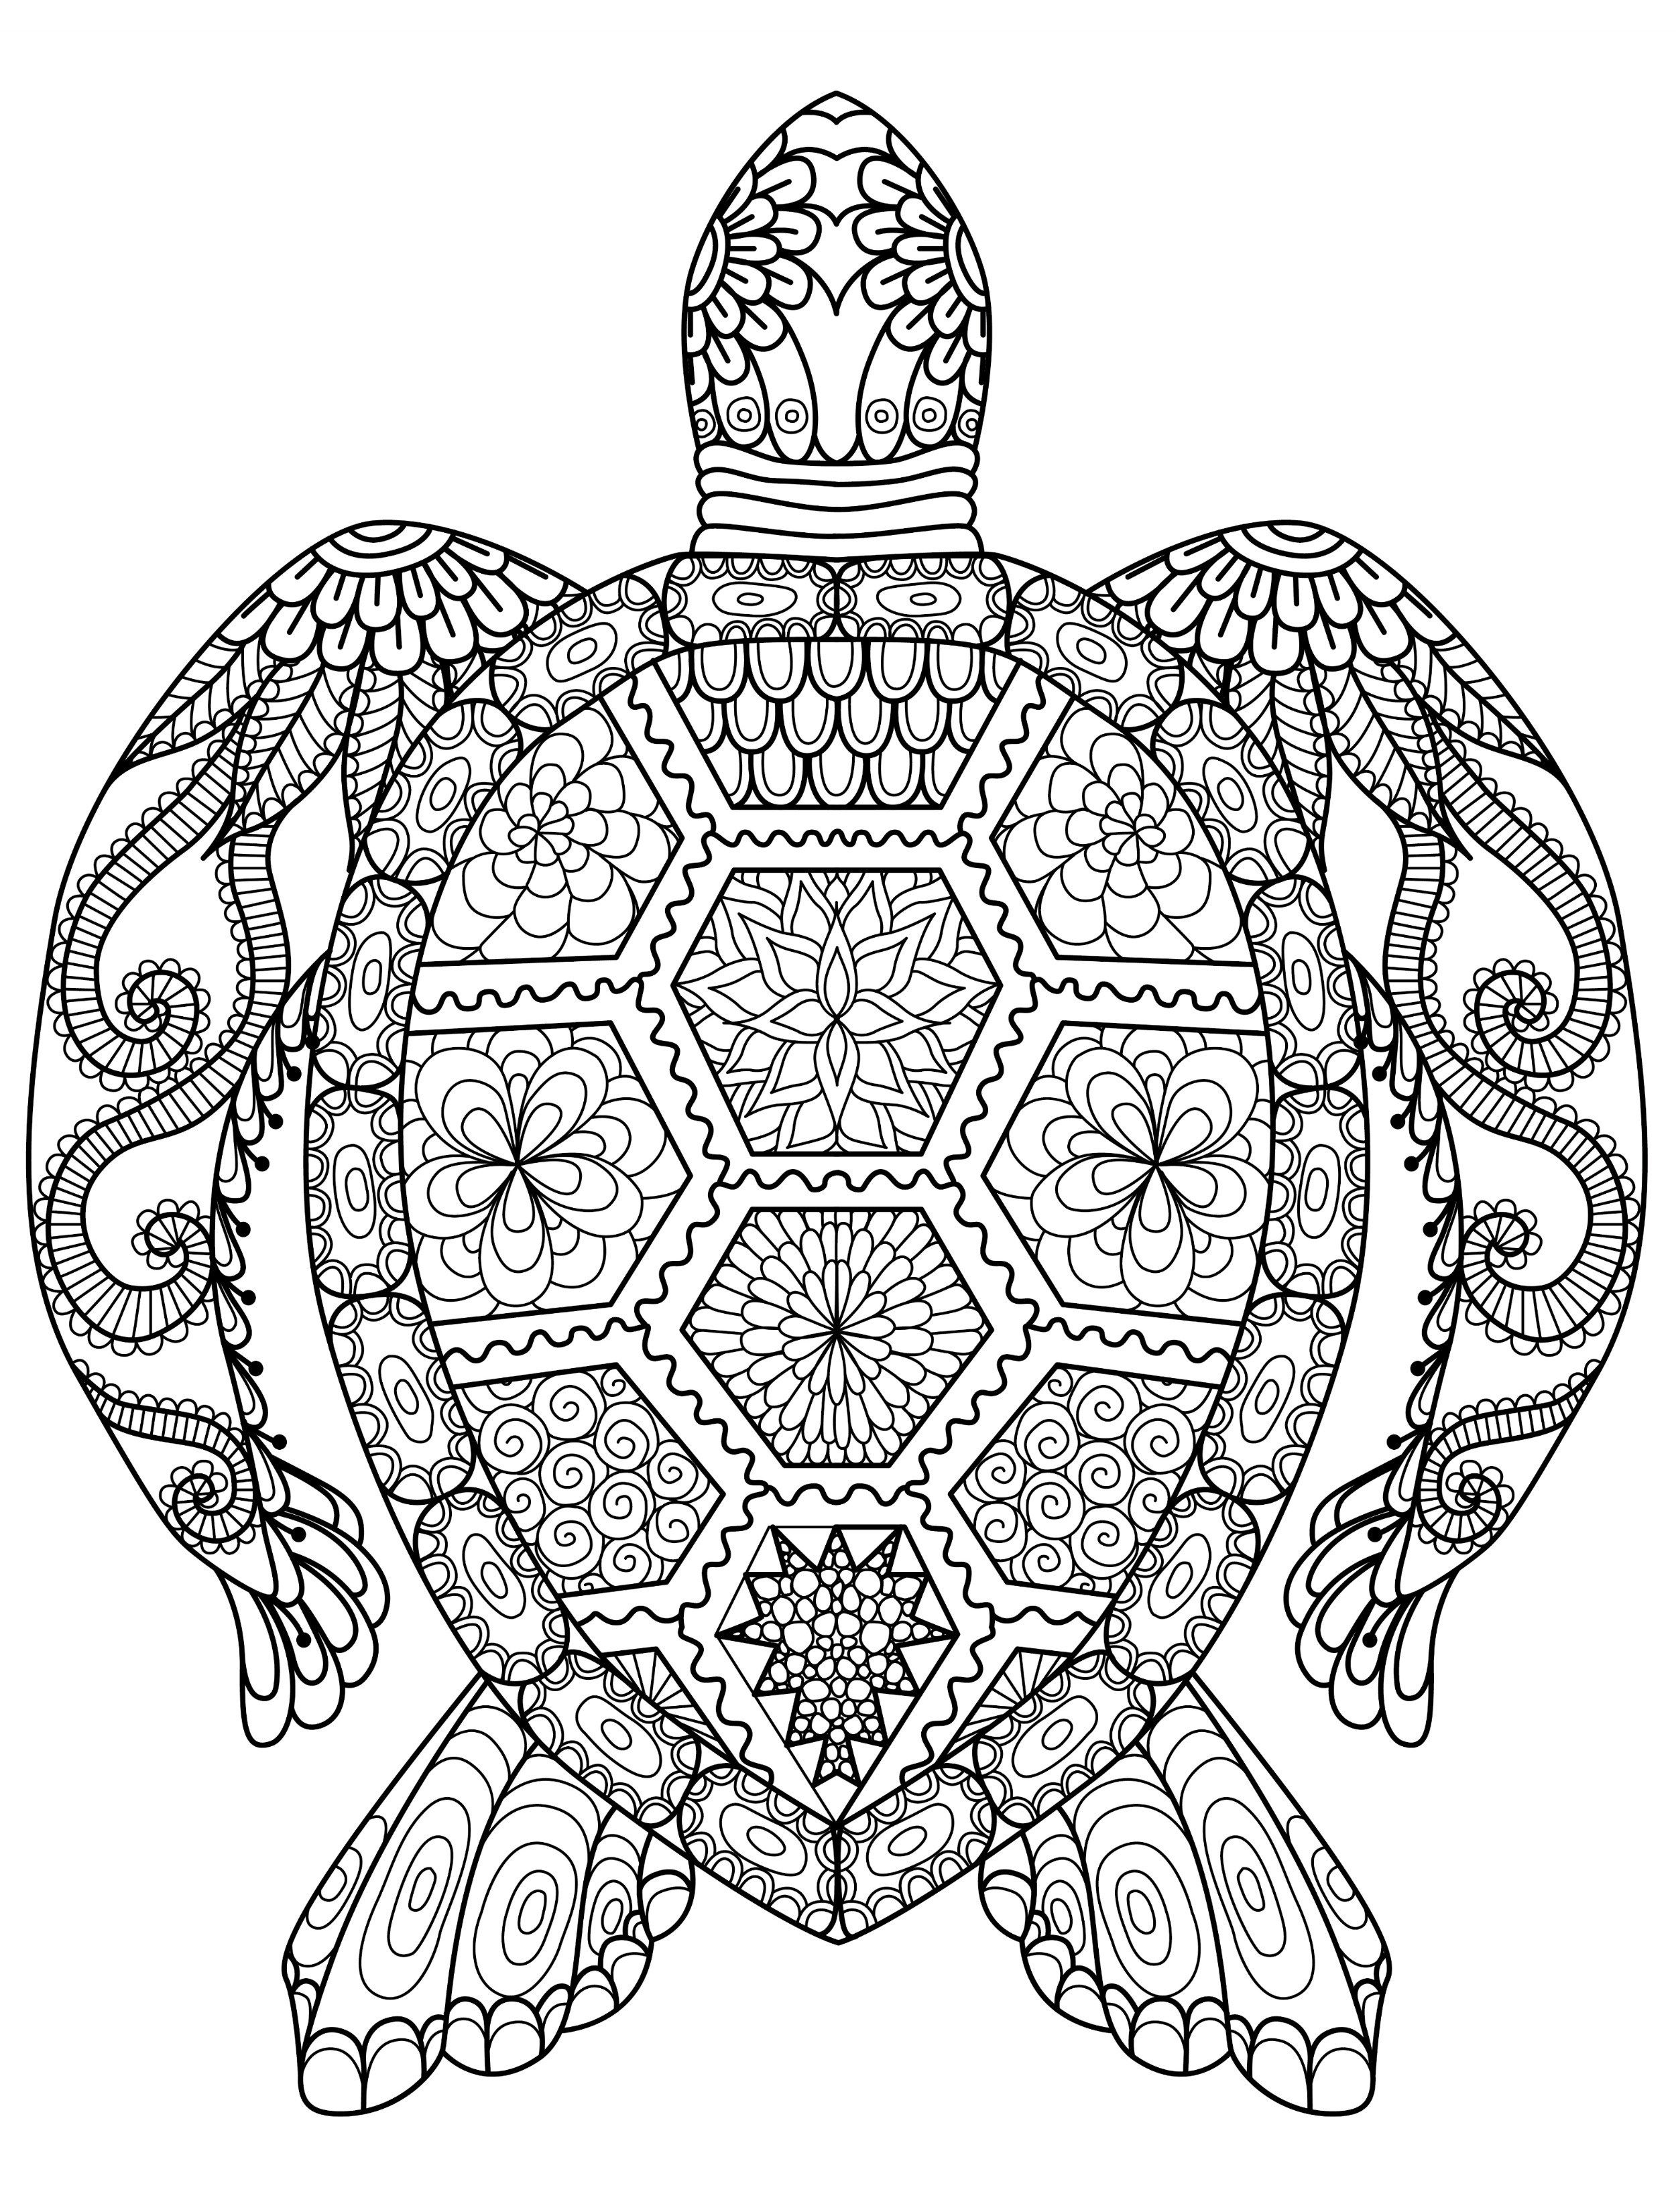 Coloring Pages Online For Adults Free